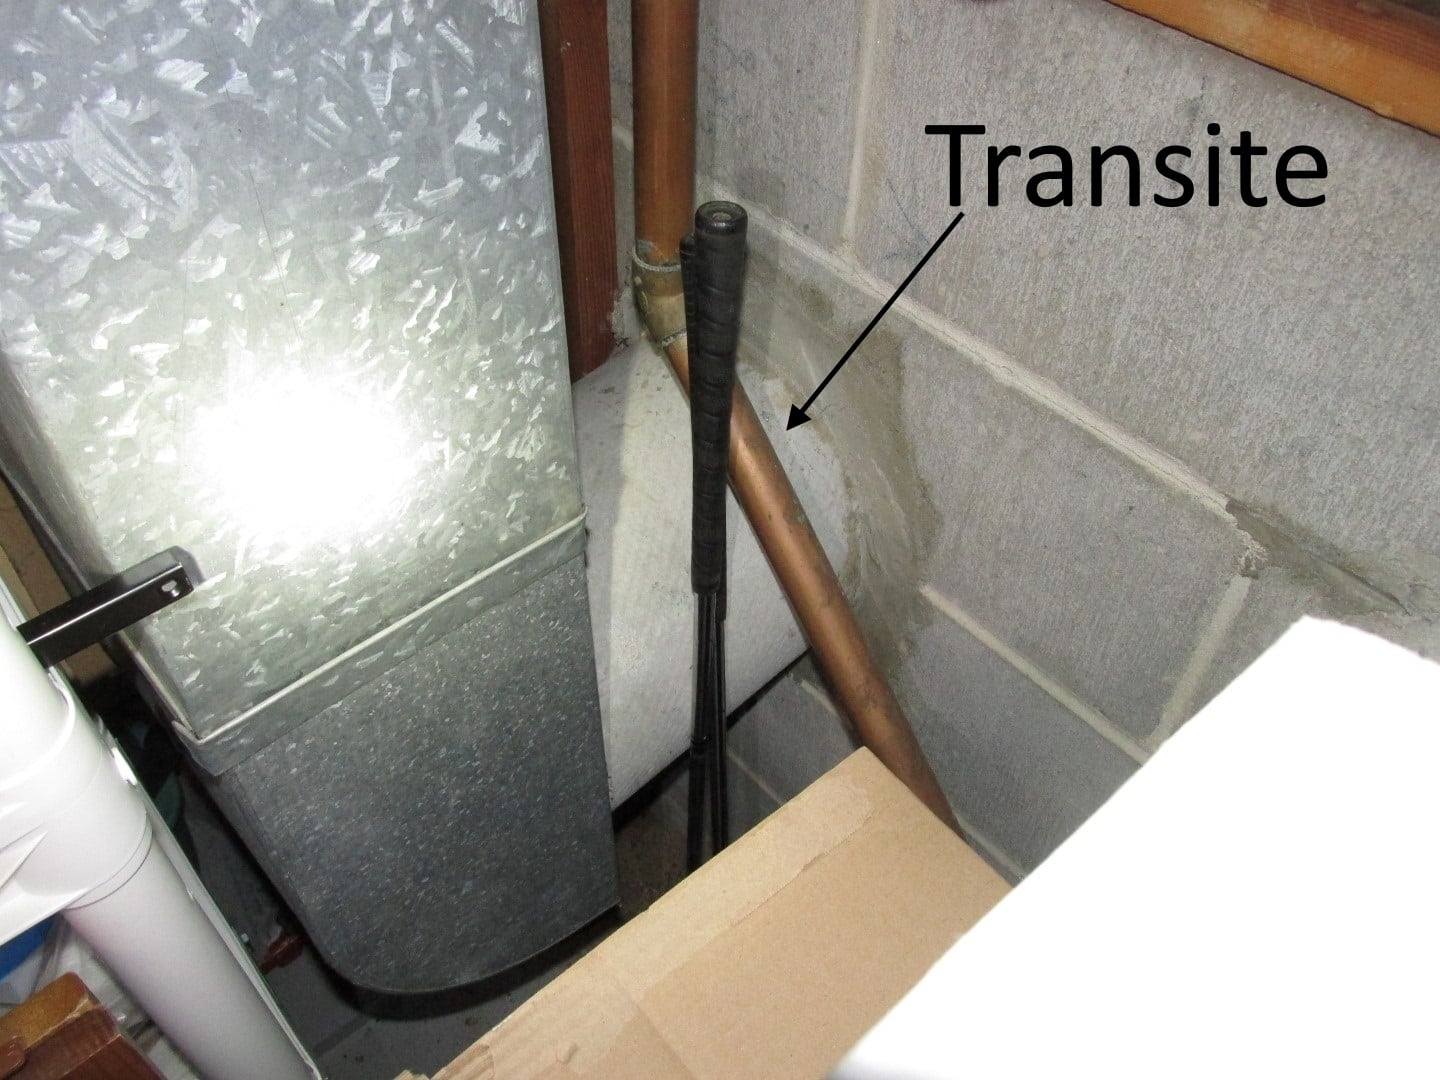 Transite vs  sub-slab ducts - Structure Tech Home Inspections